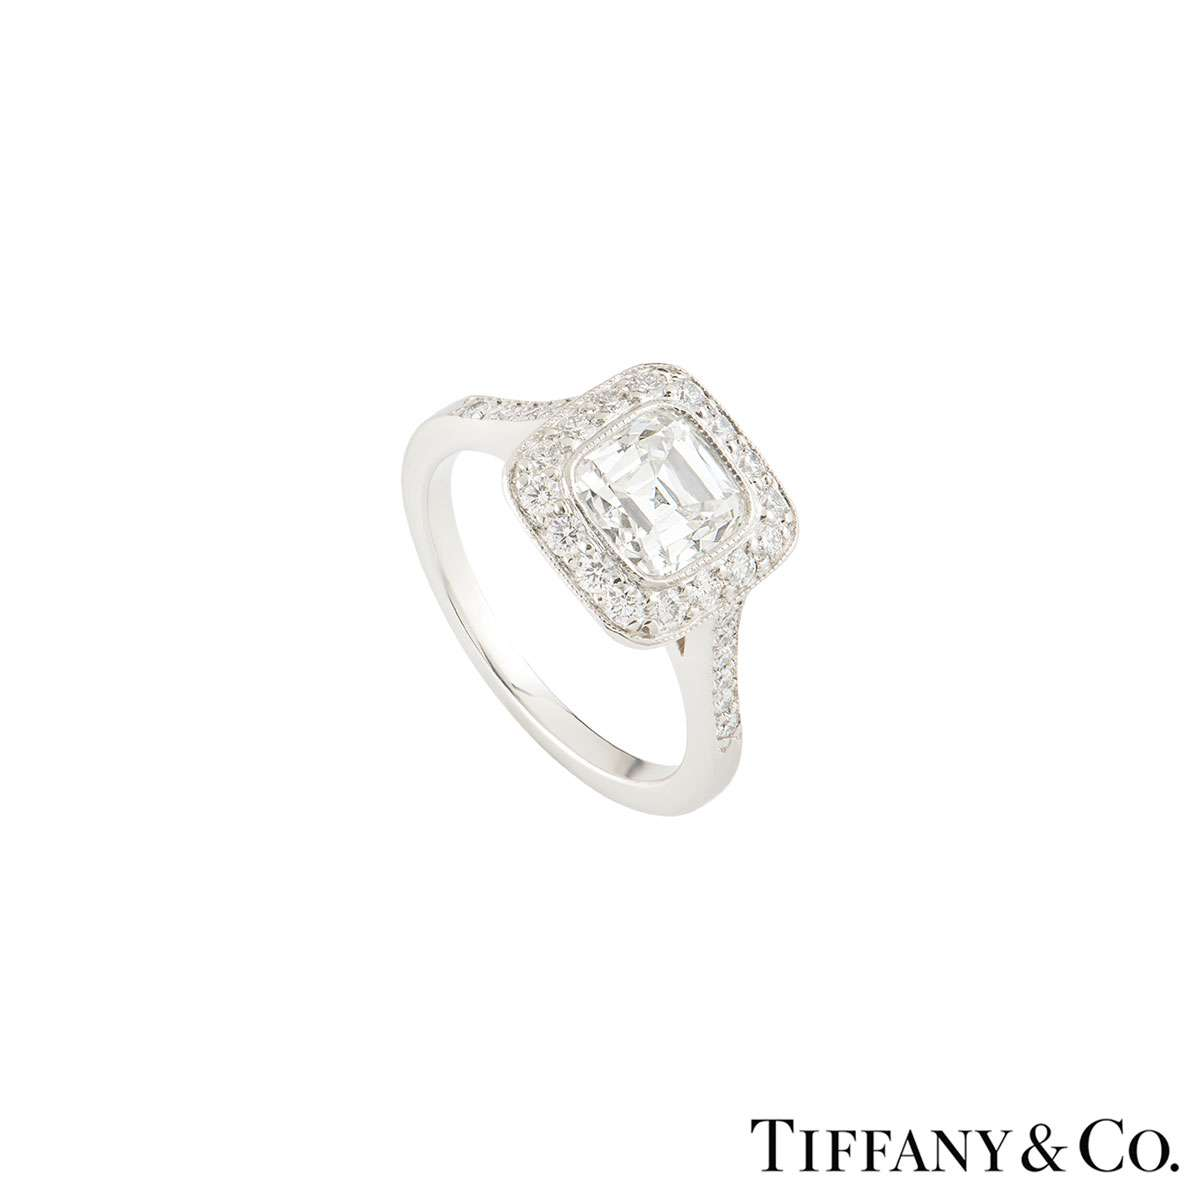 Tiffany & Co. Platinum Legacy Diamond Ring 1.54ct G/VVS1